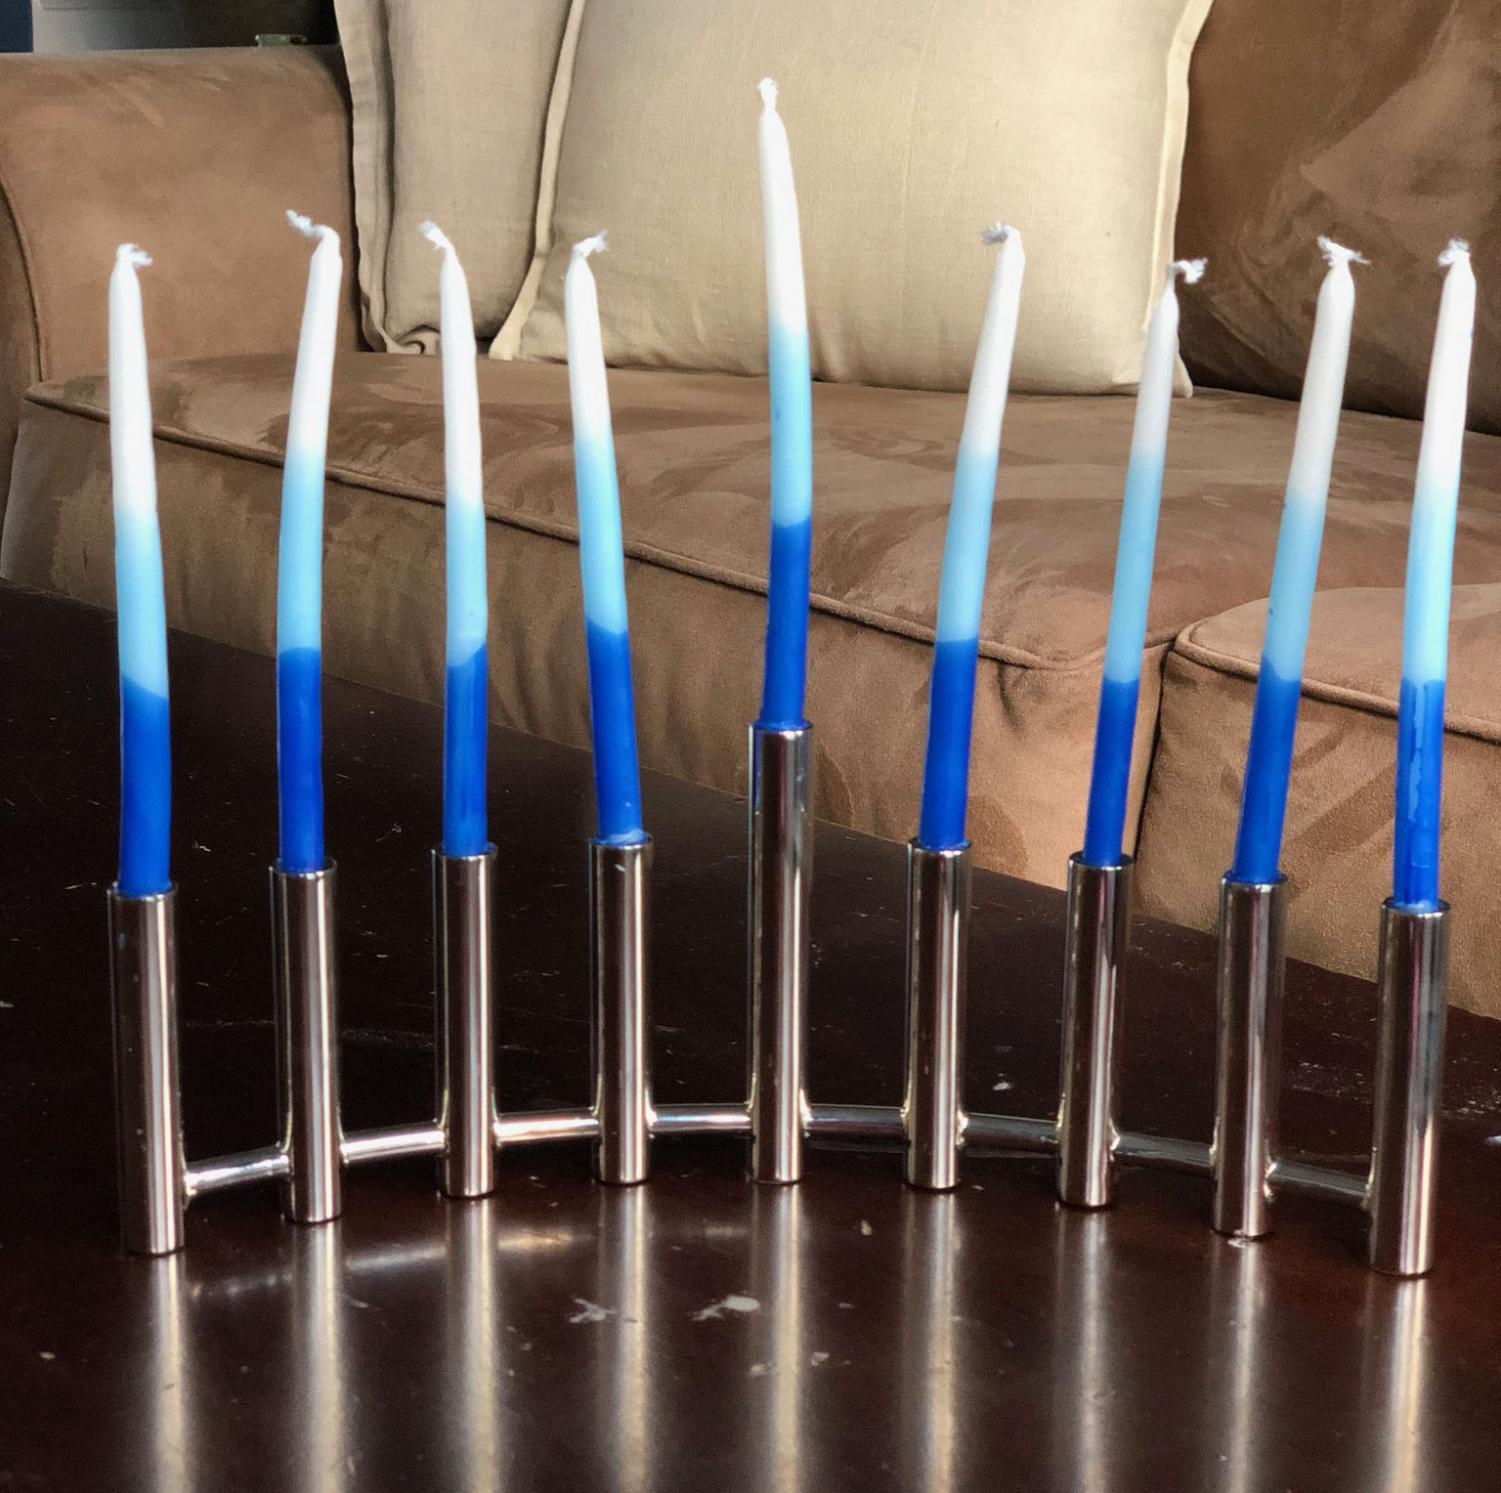 A menorah on display in the Goodman household.